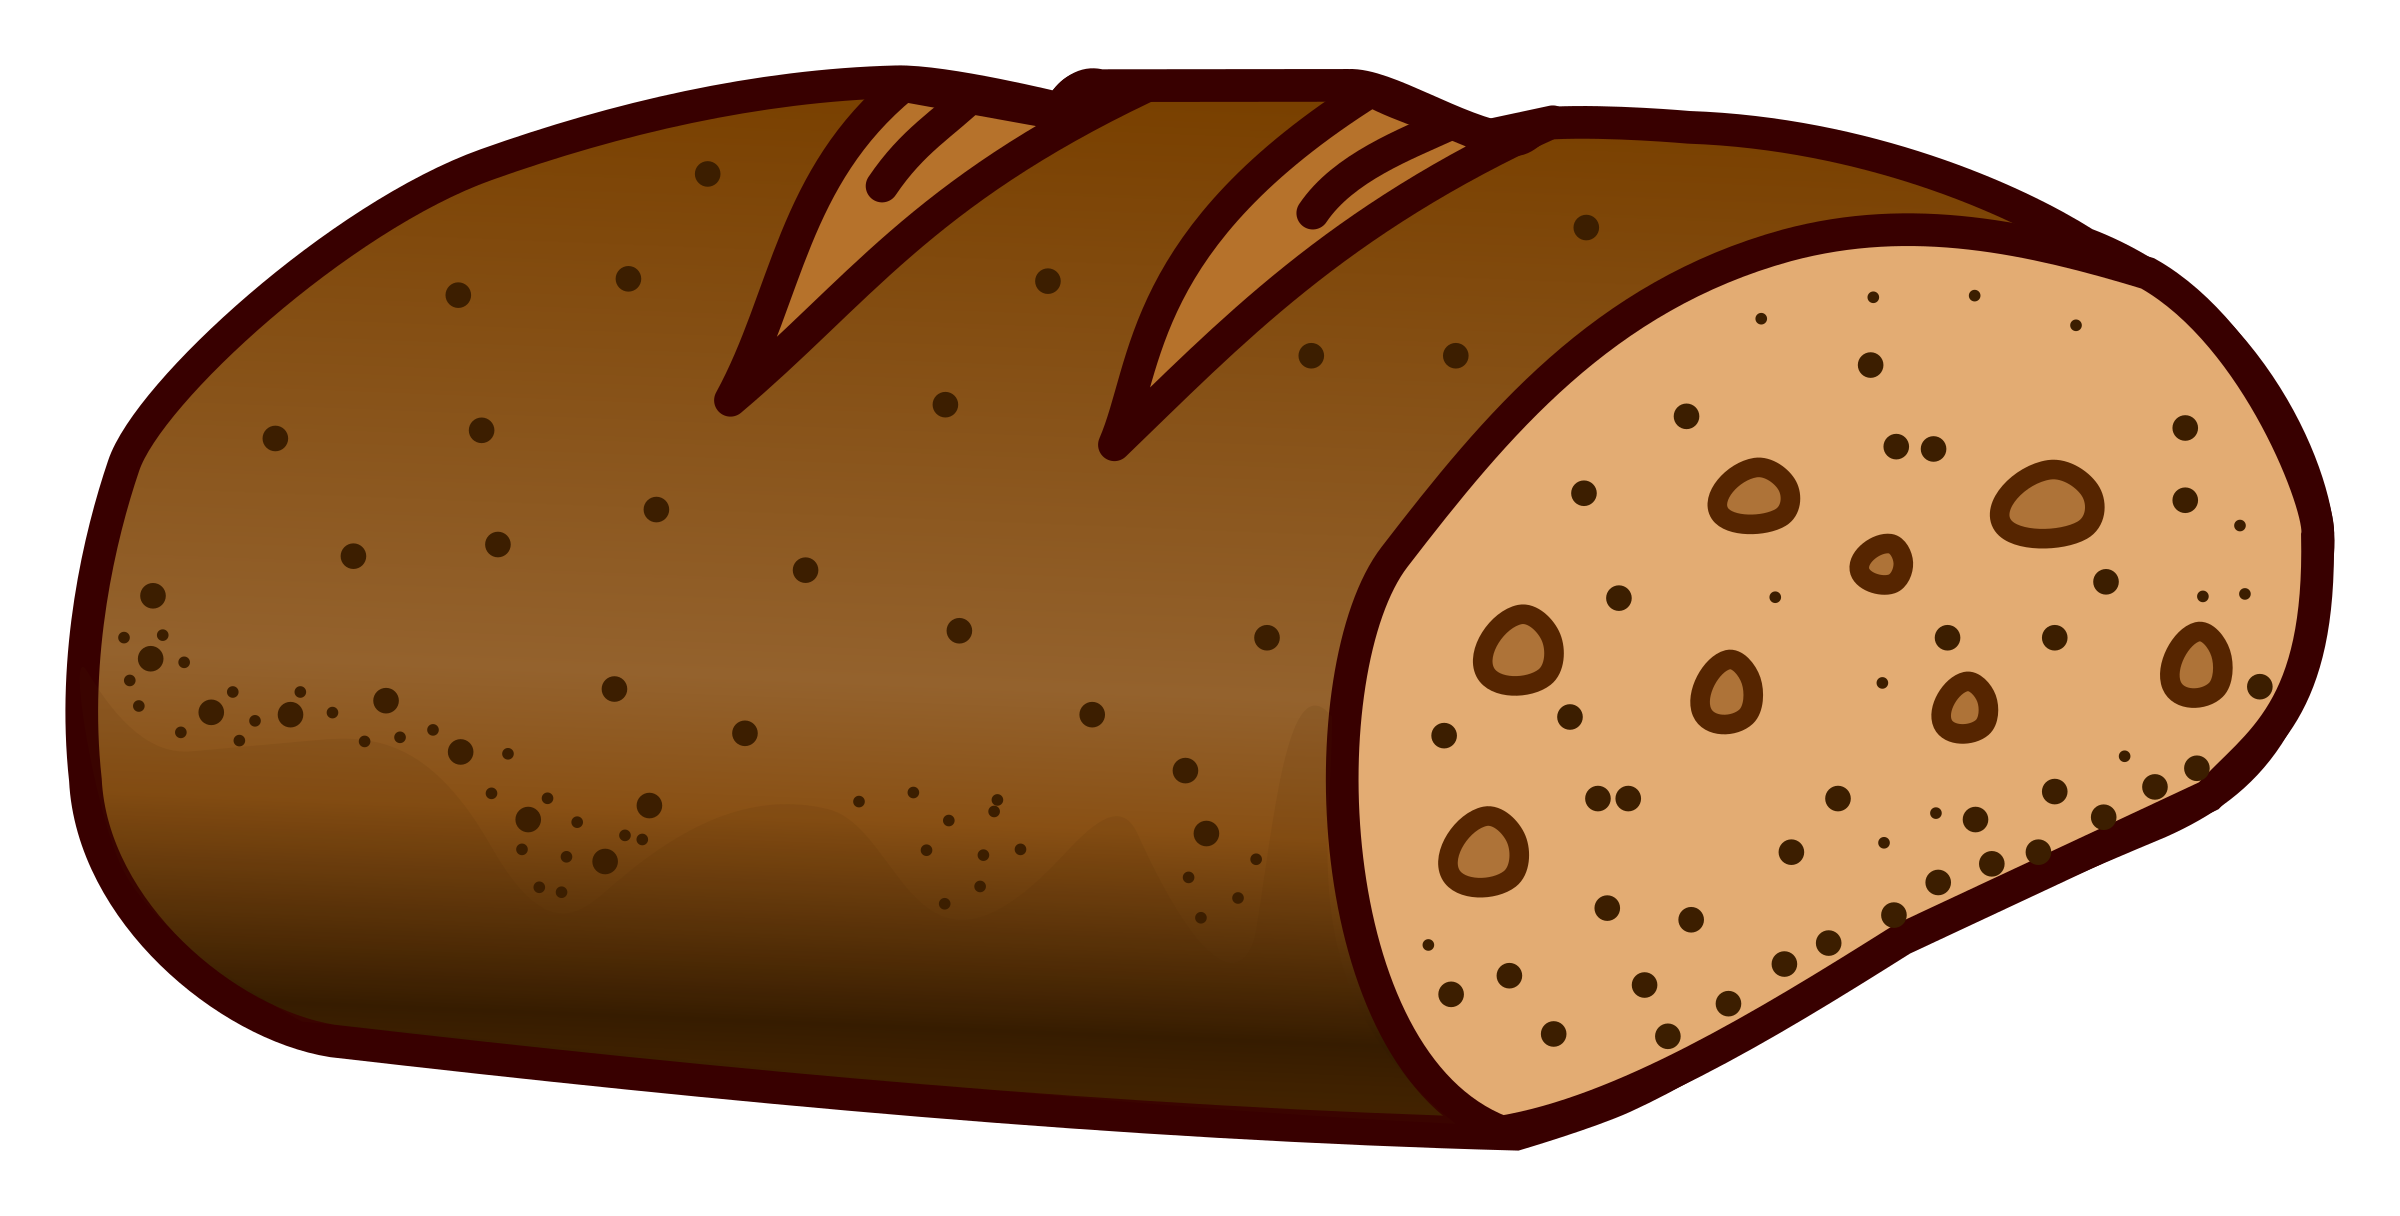 royalty free download Cinnamon roll clipart five. Tremendous loaf of bread.